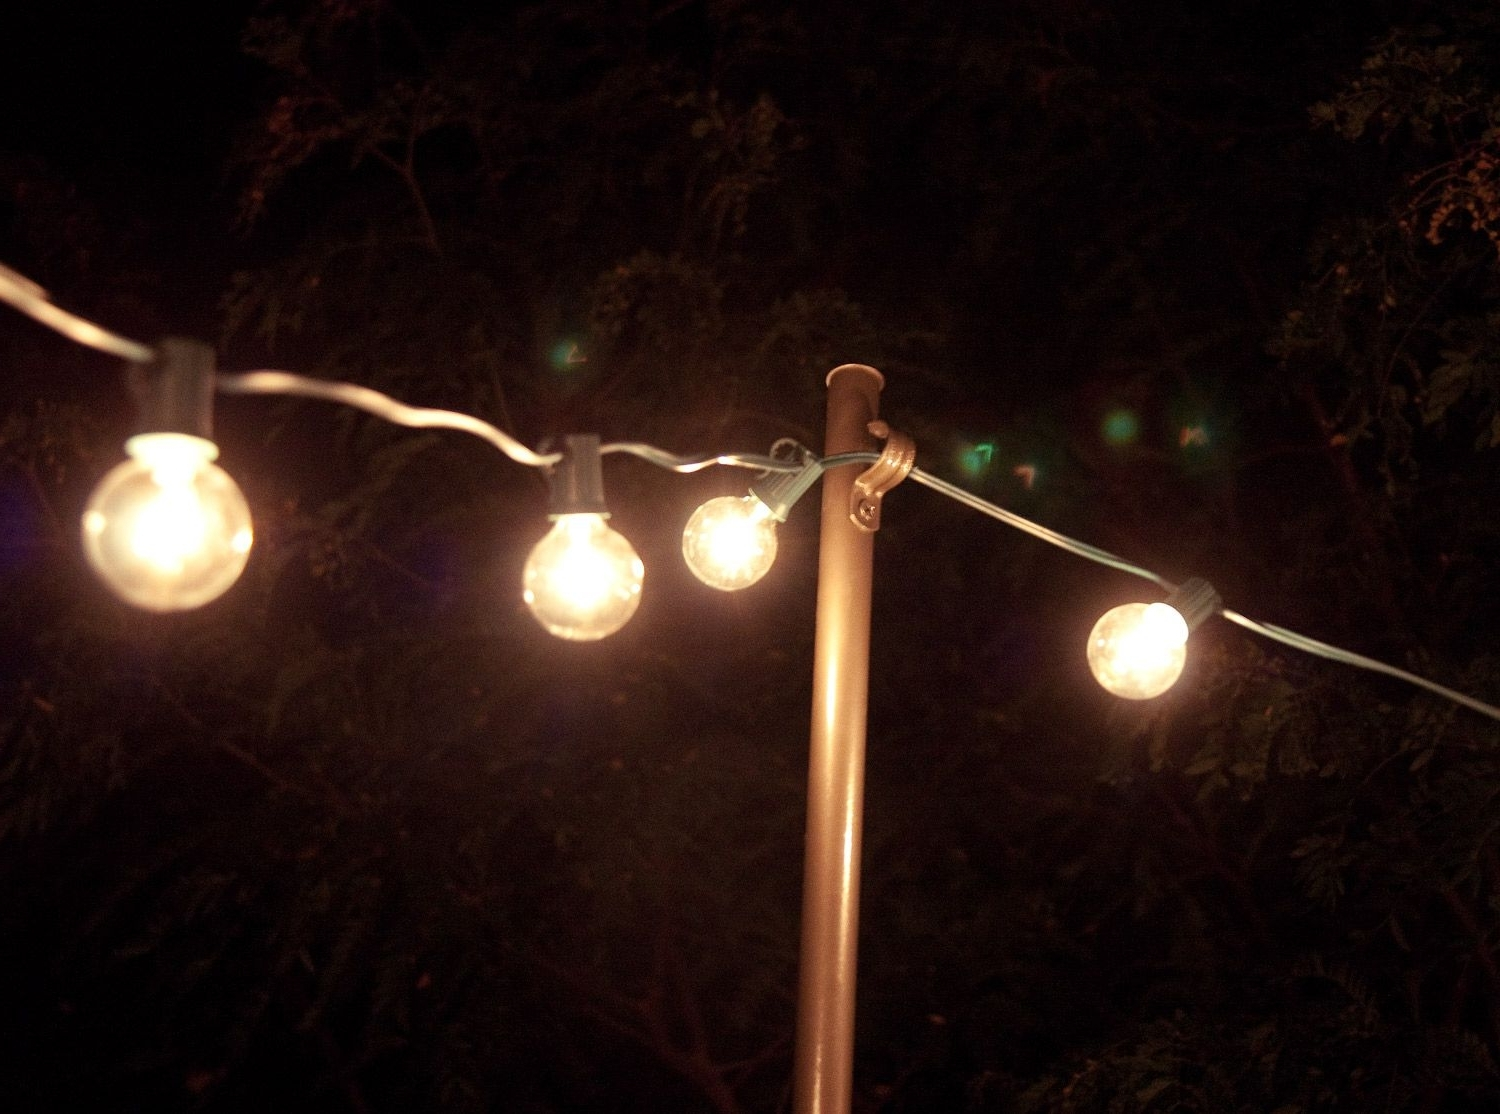 Well Known I've Been Wanting Outdoor String Lights For Our Deck For A Looooong With Regard To Hanging Outdoor Light On Rod (View 11 of 20)